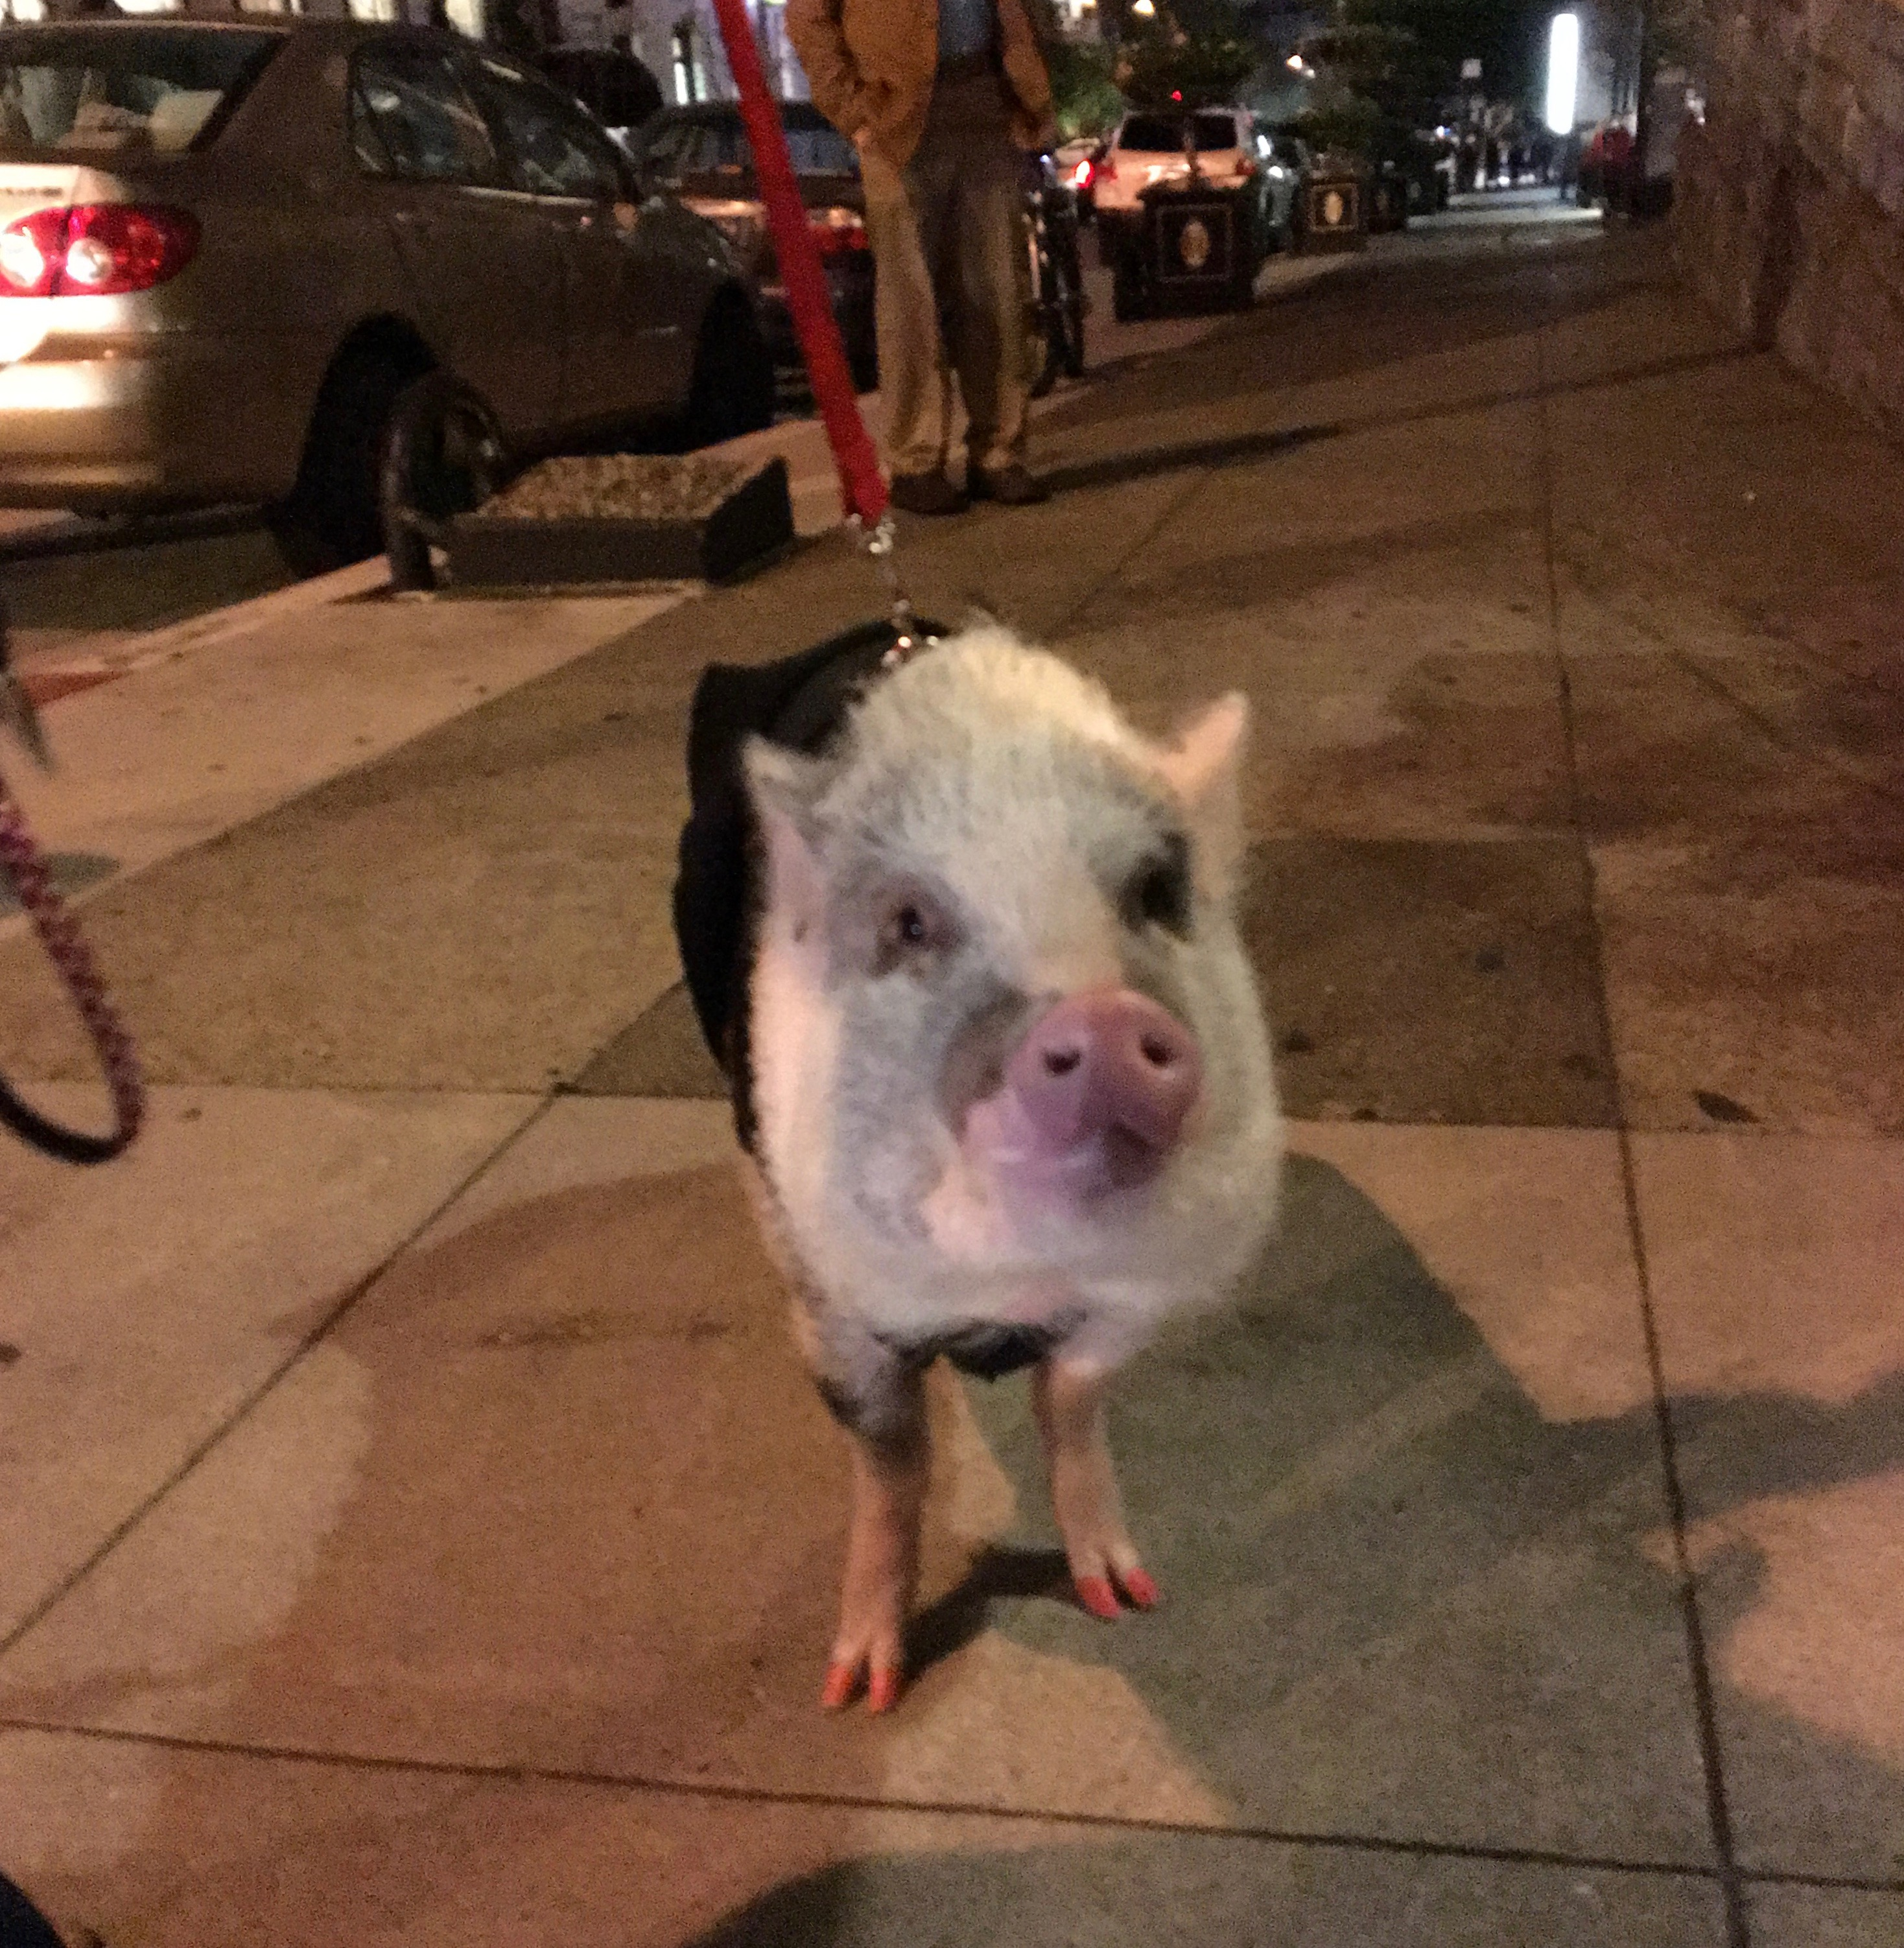 LiLou the Therapy Pig With Red-Painted Trotters